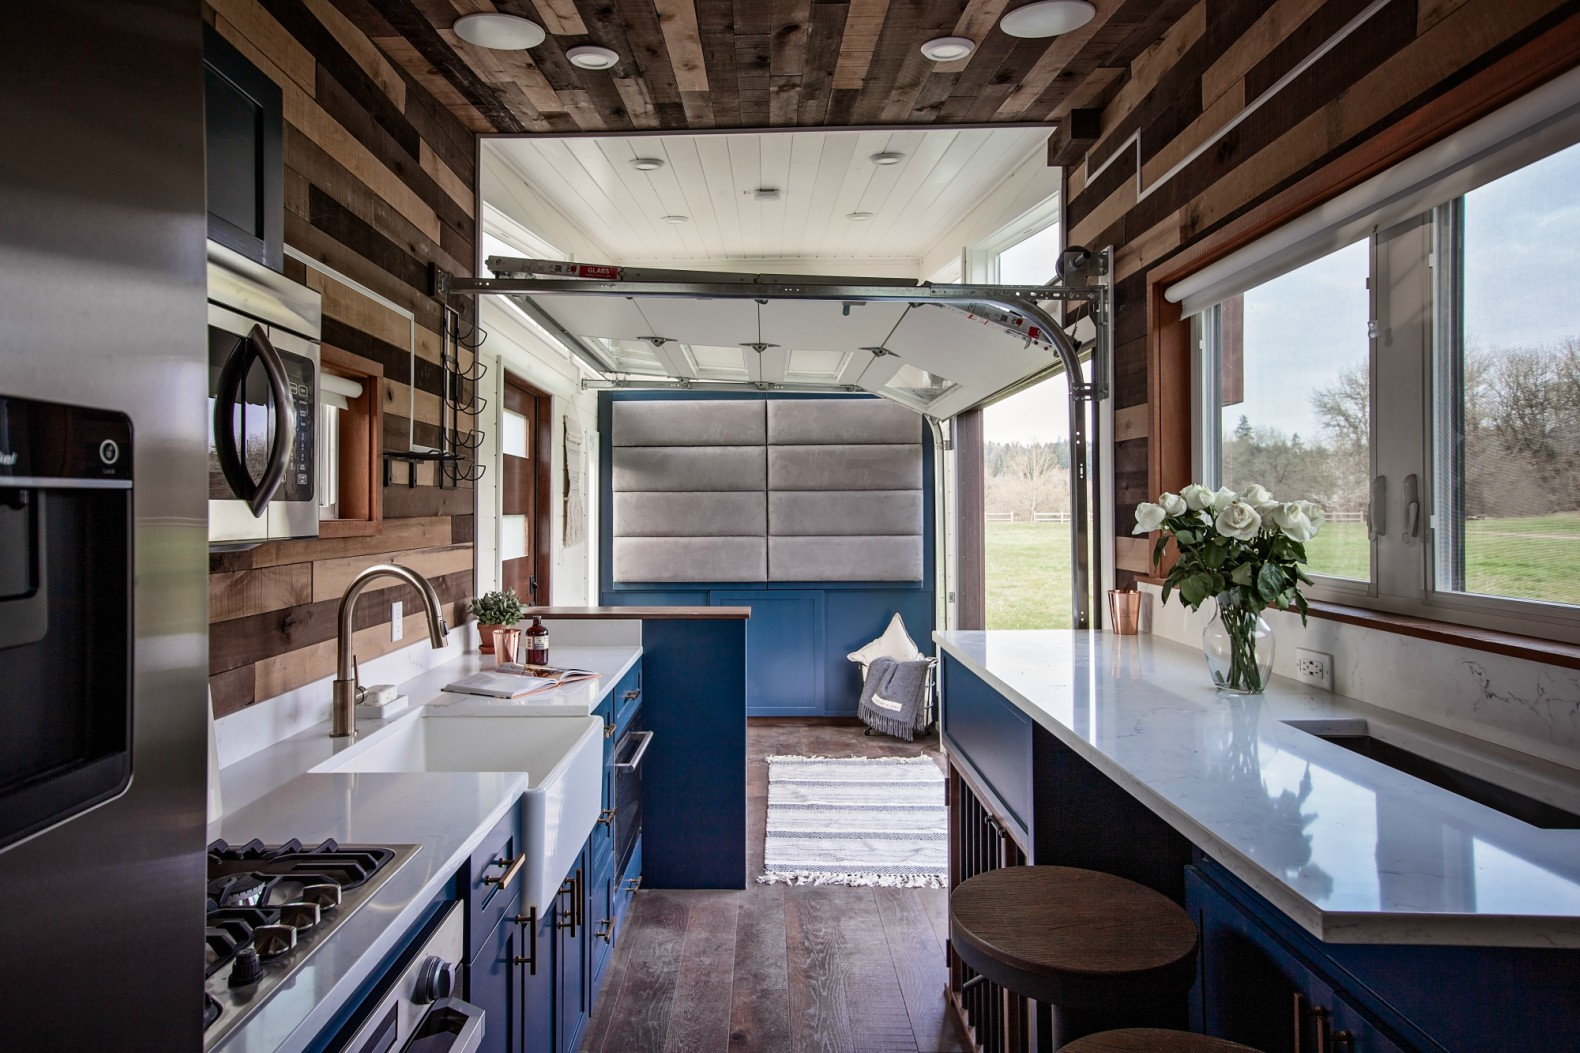 Tiny Heirloom designs a tiny home that transforms into ...